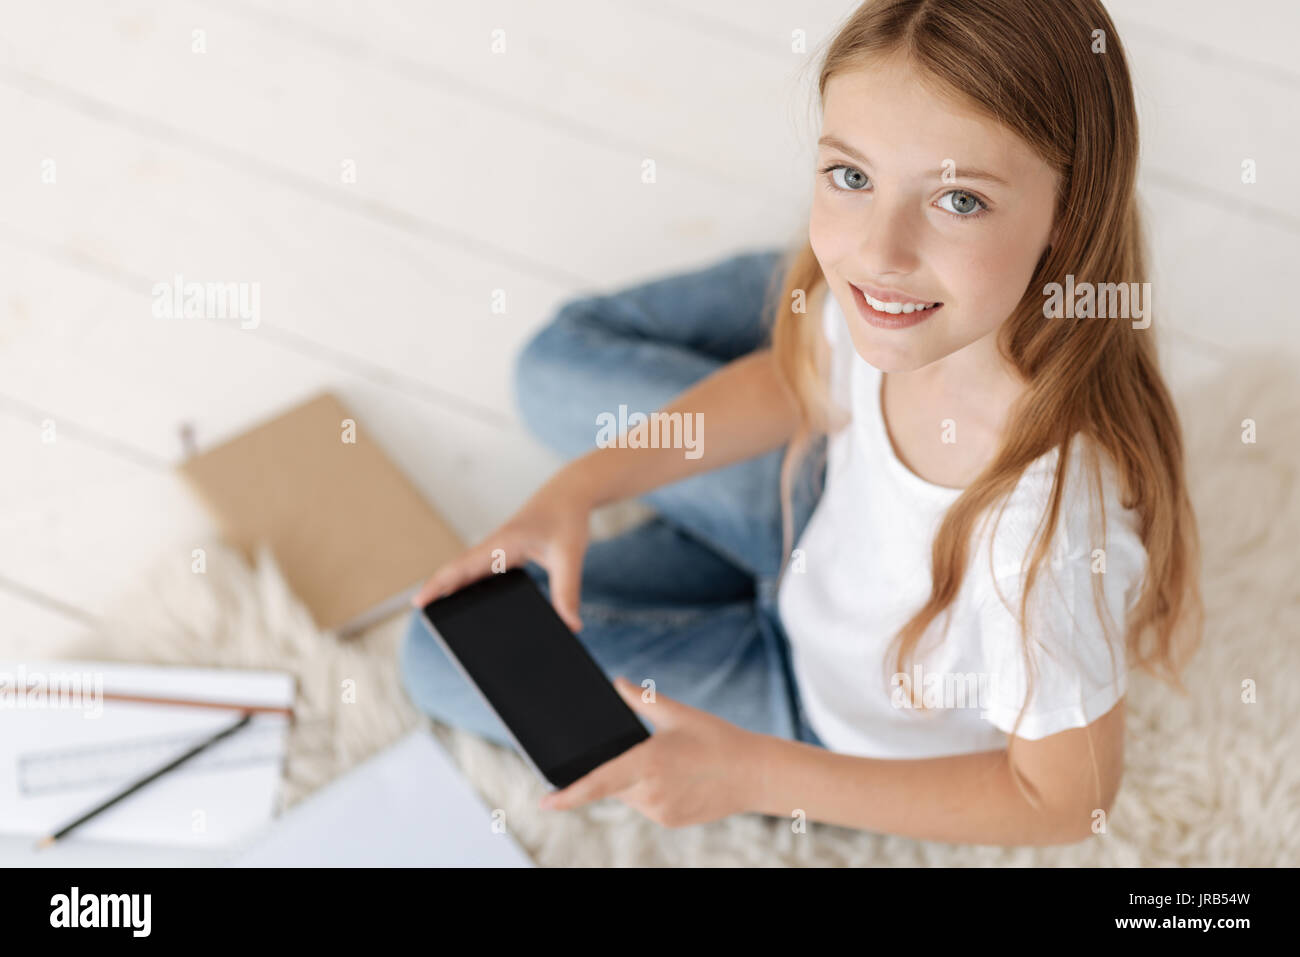 Diligent female pupil looking into camera while holding phone - Stock Image